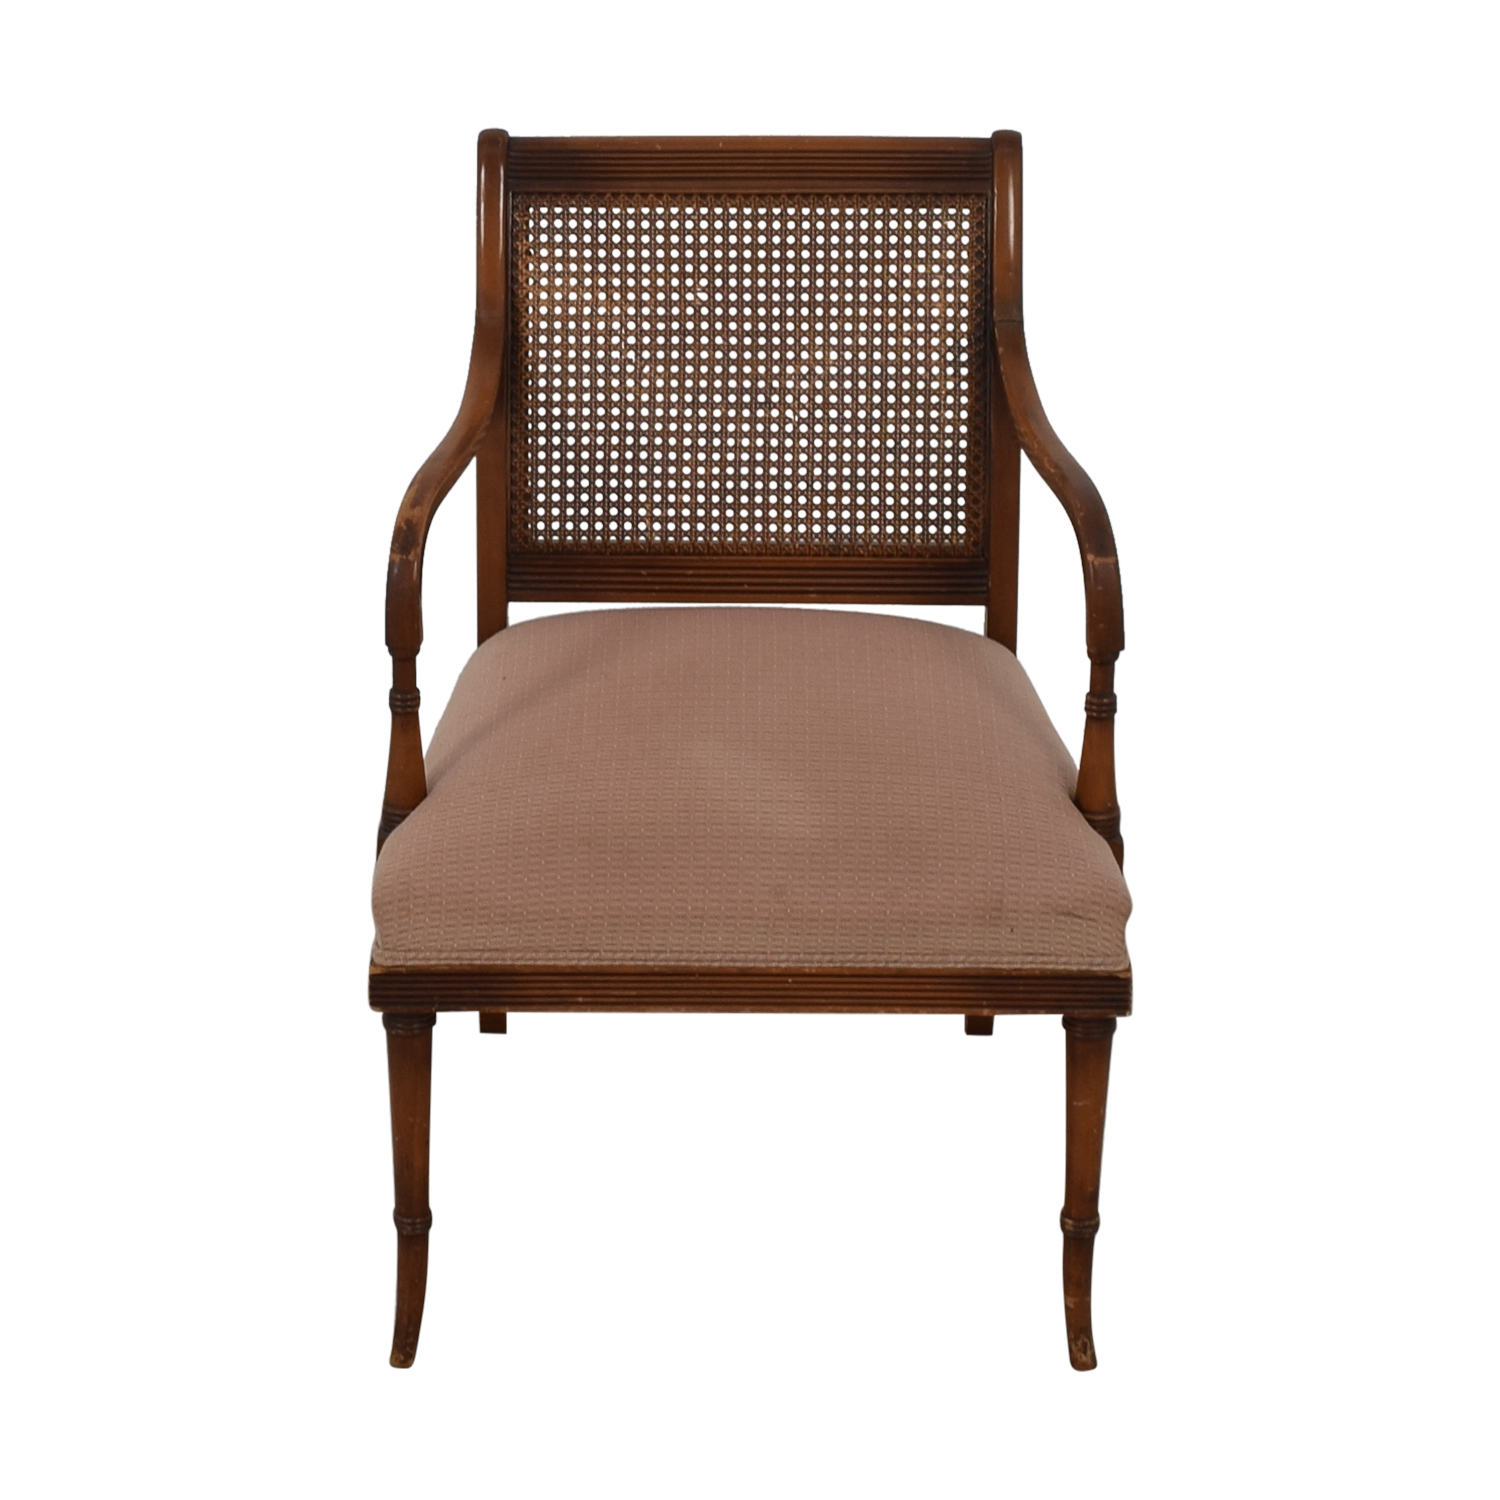 Vintage Rattan Arm Chair Chairs